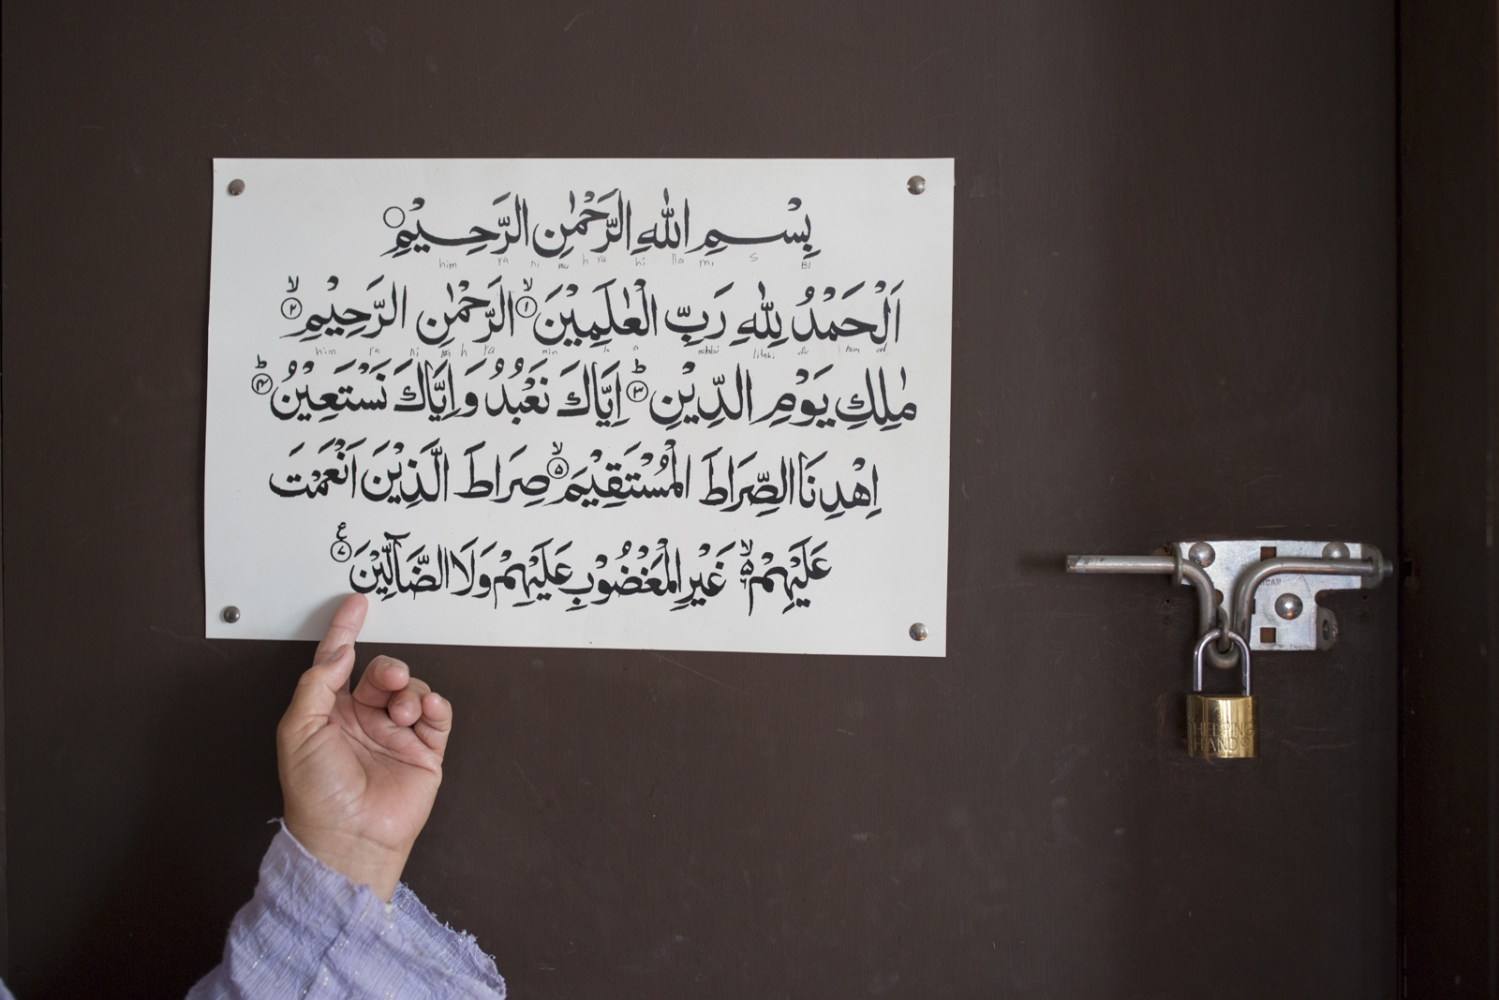 Irma Morales shows a sign with a text from the Koran at her daughter's house in Rosarito, Mexico.